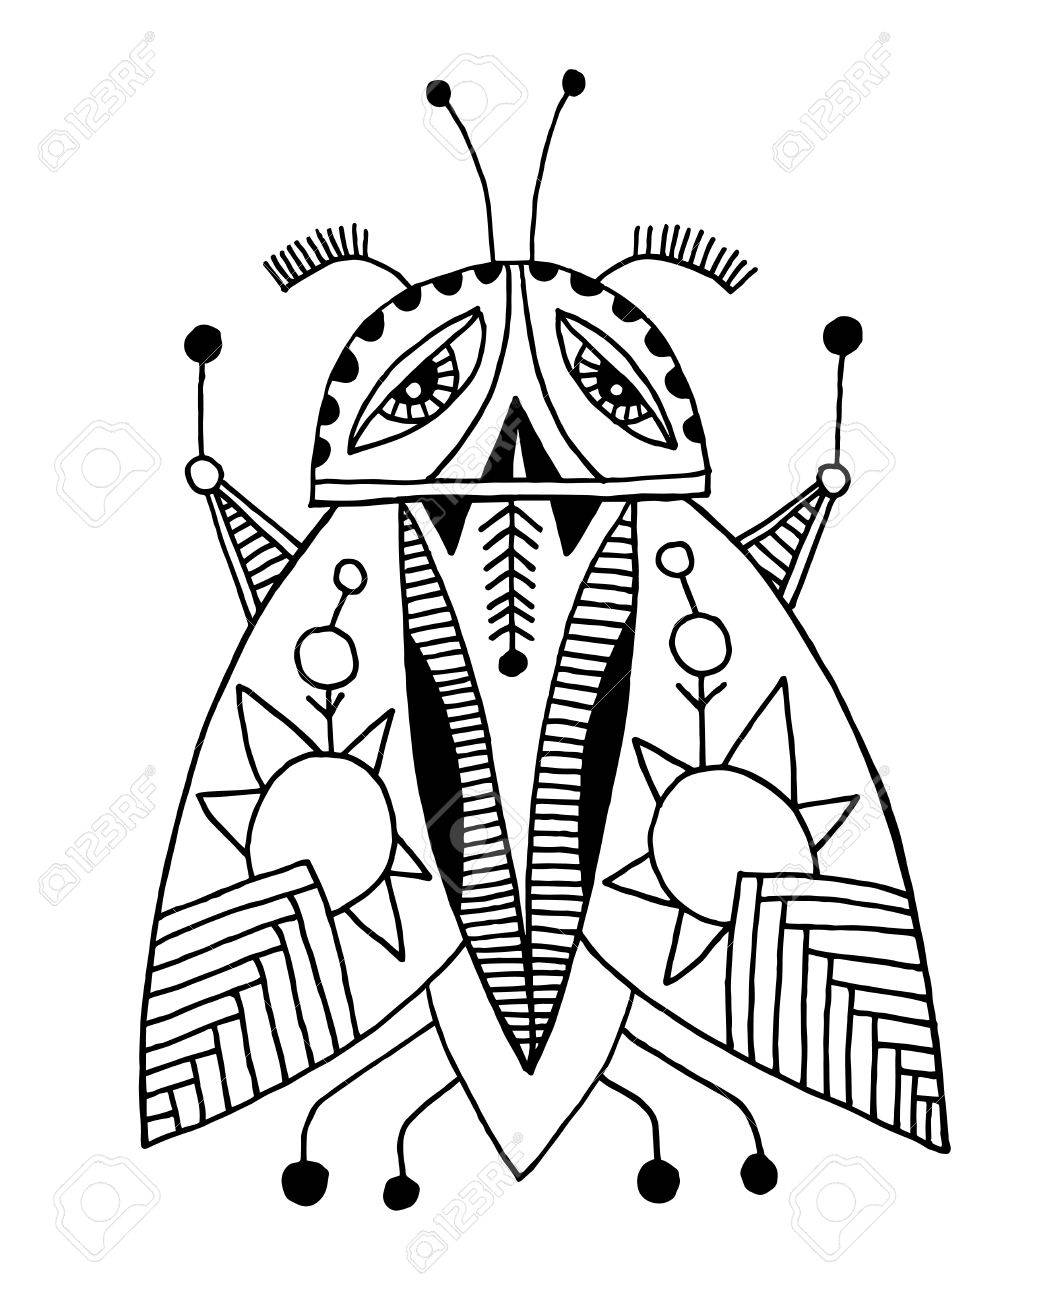 1062x1300 Black And White Handmade Liner Drawing Of Ethnic Beetle In Flat